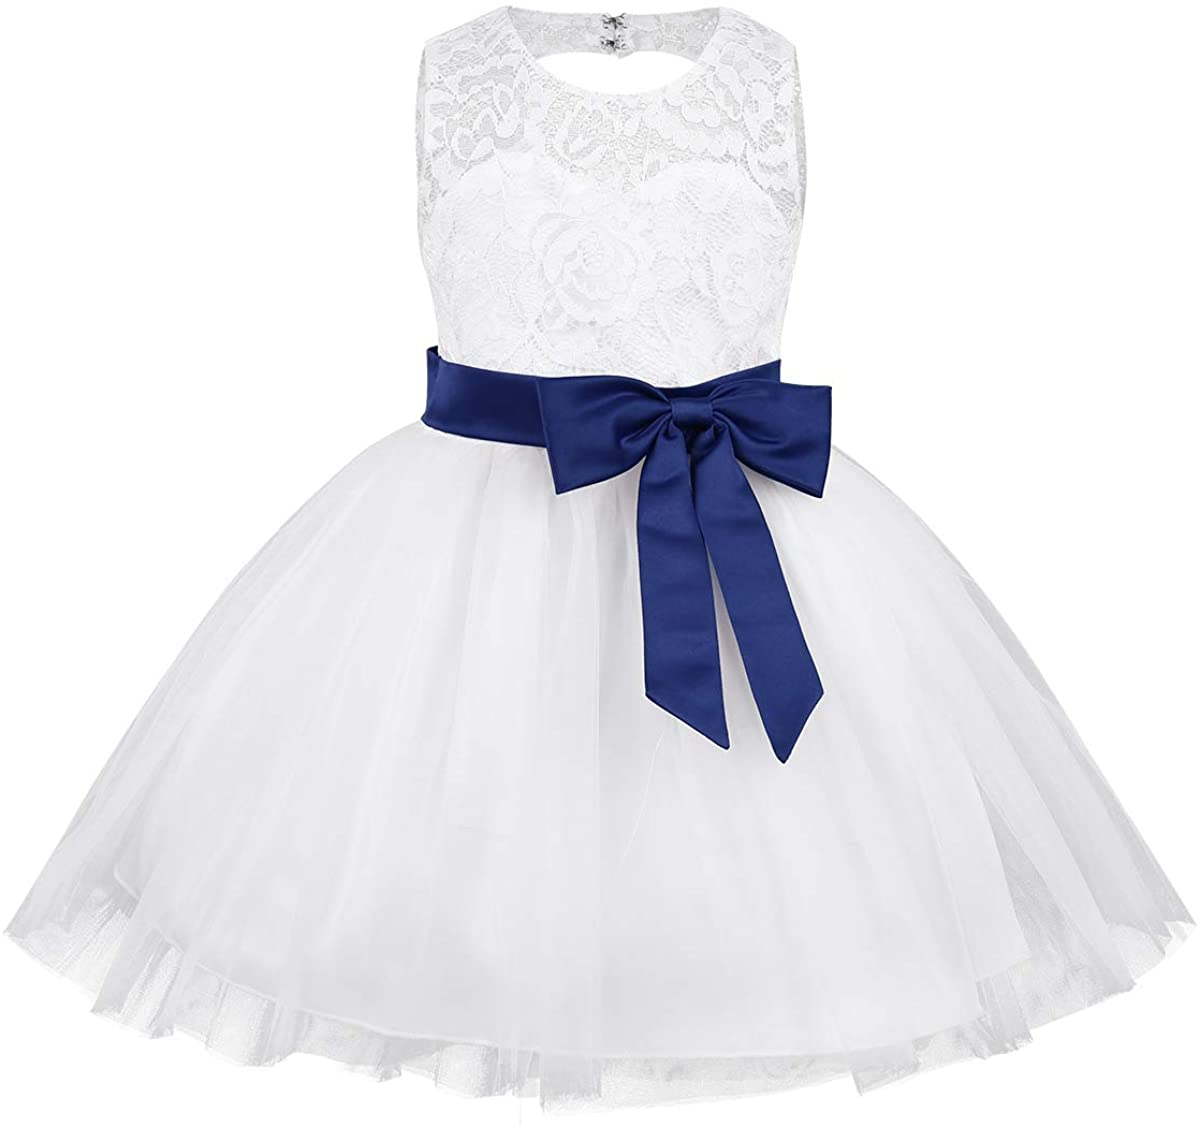 ACSUSS Infant Baby Girls Wedding Pageant Bridesmaid Floral Lace Flower Dress Bowknot Sash Tutu Dress Ball Gown